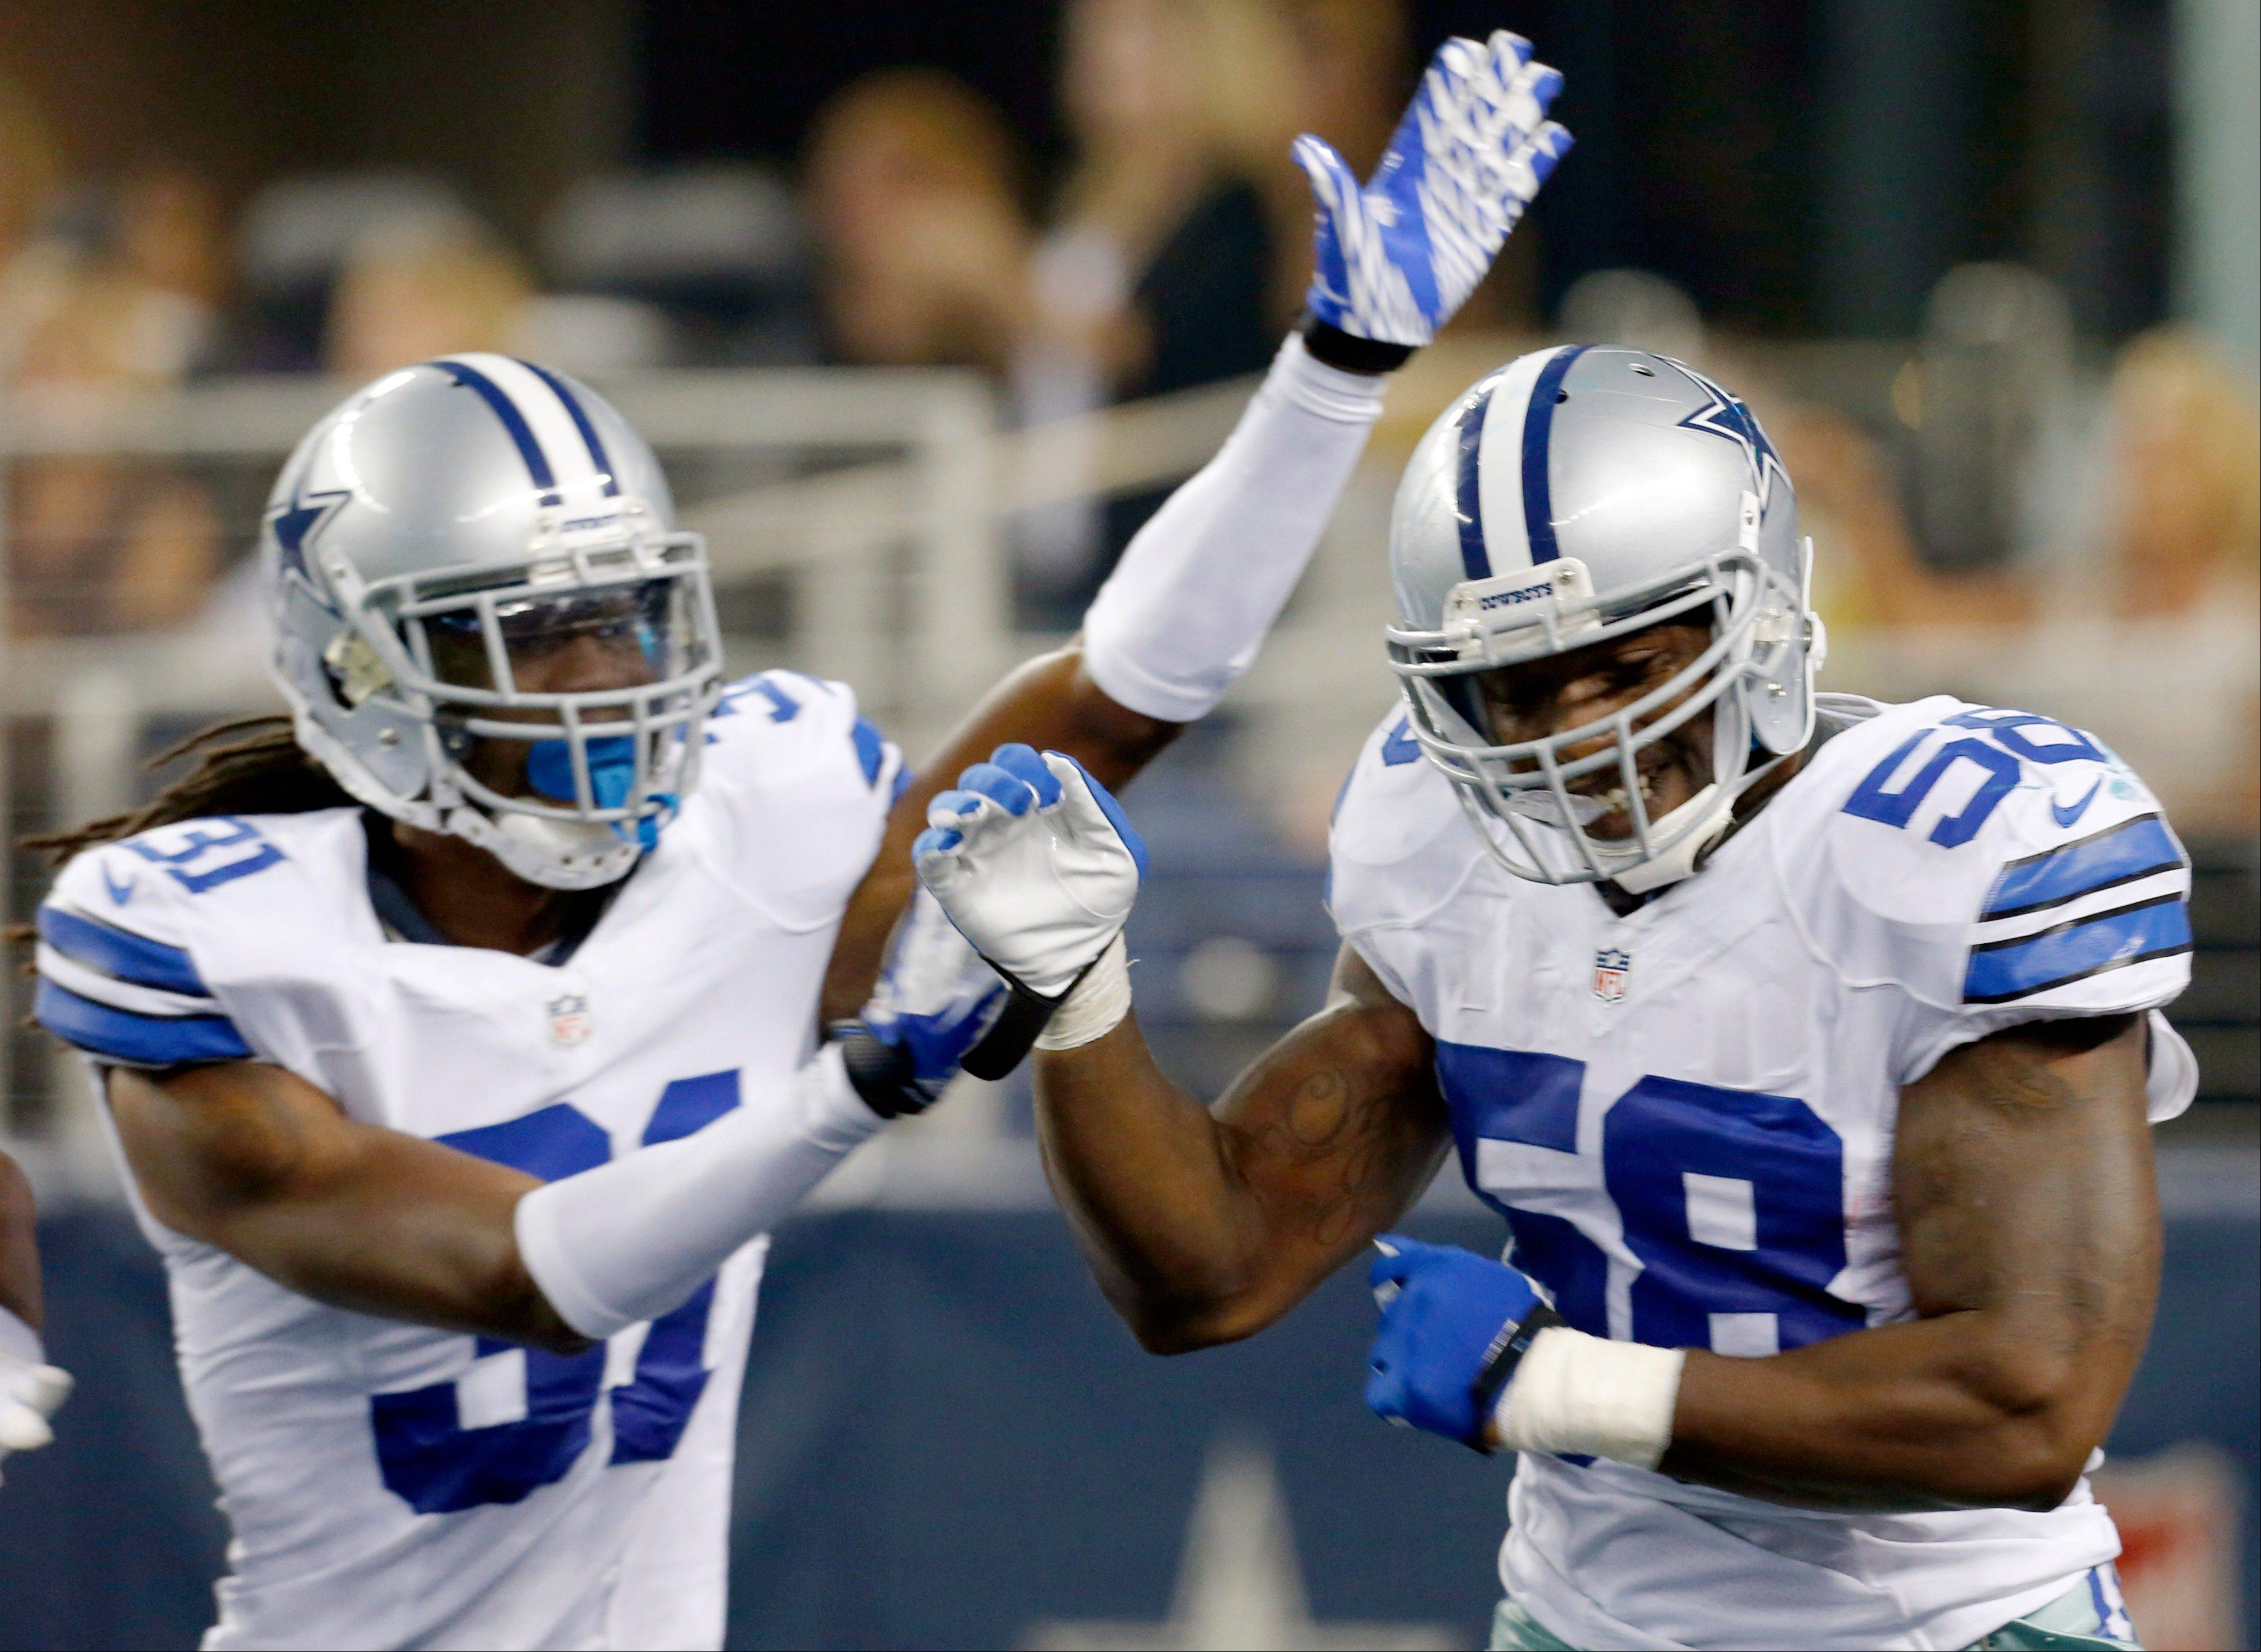 Dallas Cowboys linebacker Orie Lemon (58) celebrates after scoring a touchdown from an interception thrown by Miami Dolphins quarterback Matt Moore with Cowboys defensive back Mario Butler, left, during the first half of a preseason NFL football game Wednesday in Arlington, Texas.